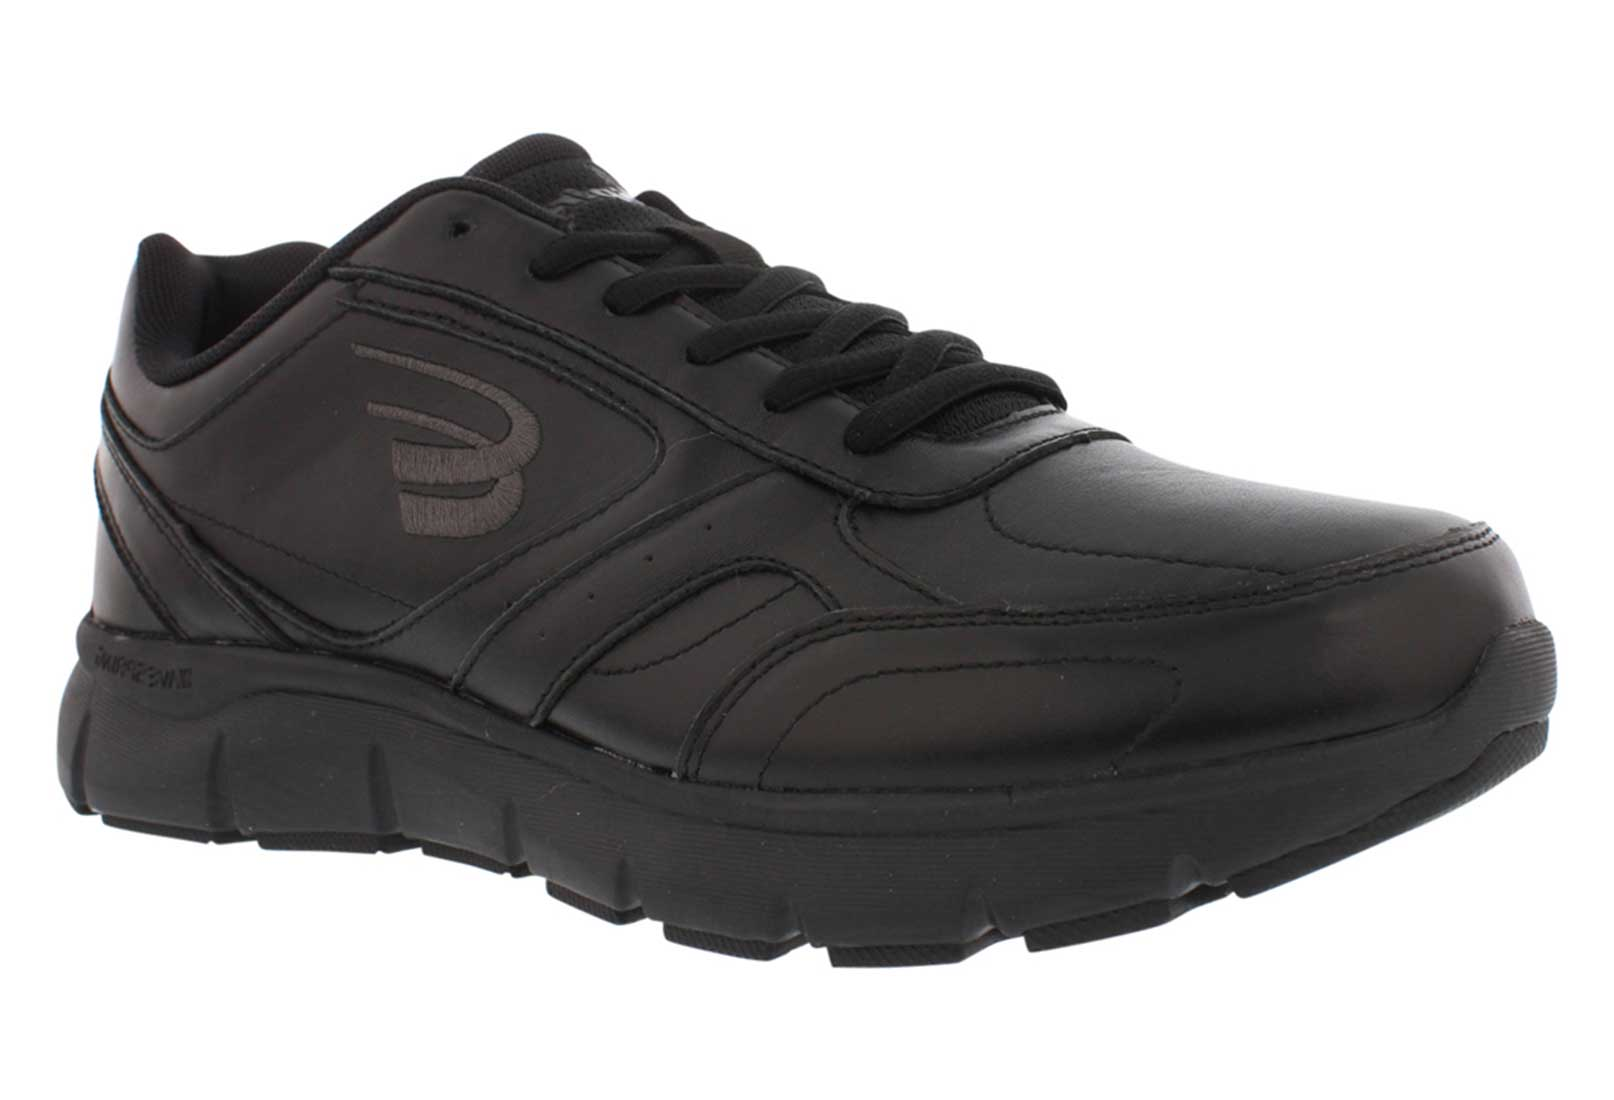 Spira Footwear - Men's WaveWalker